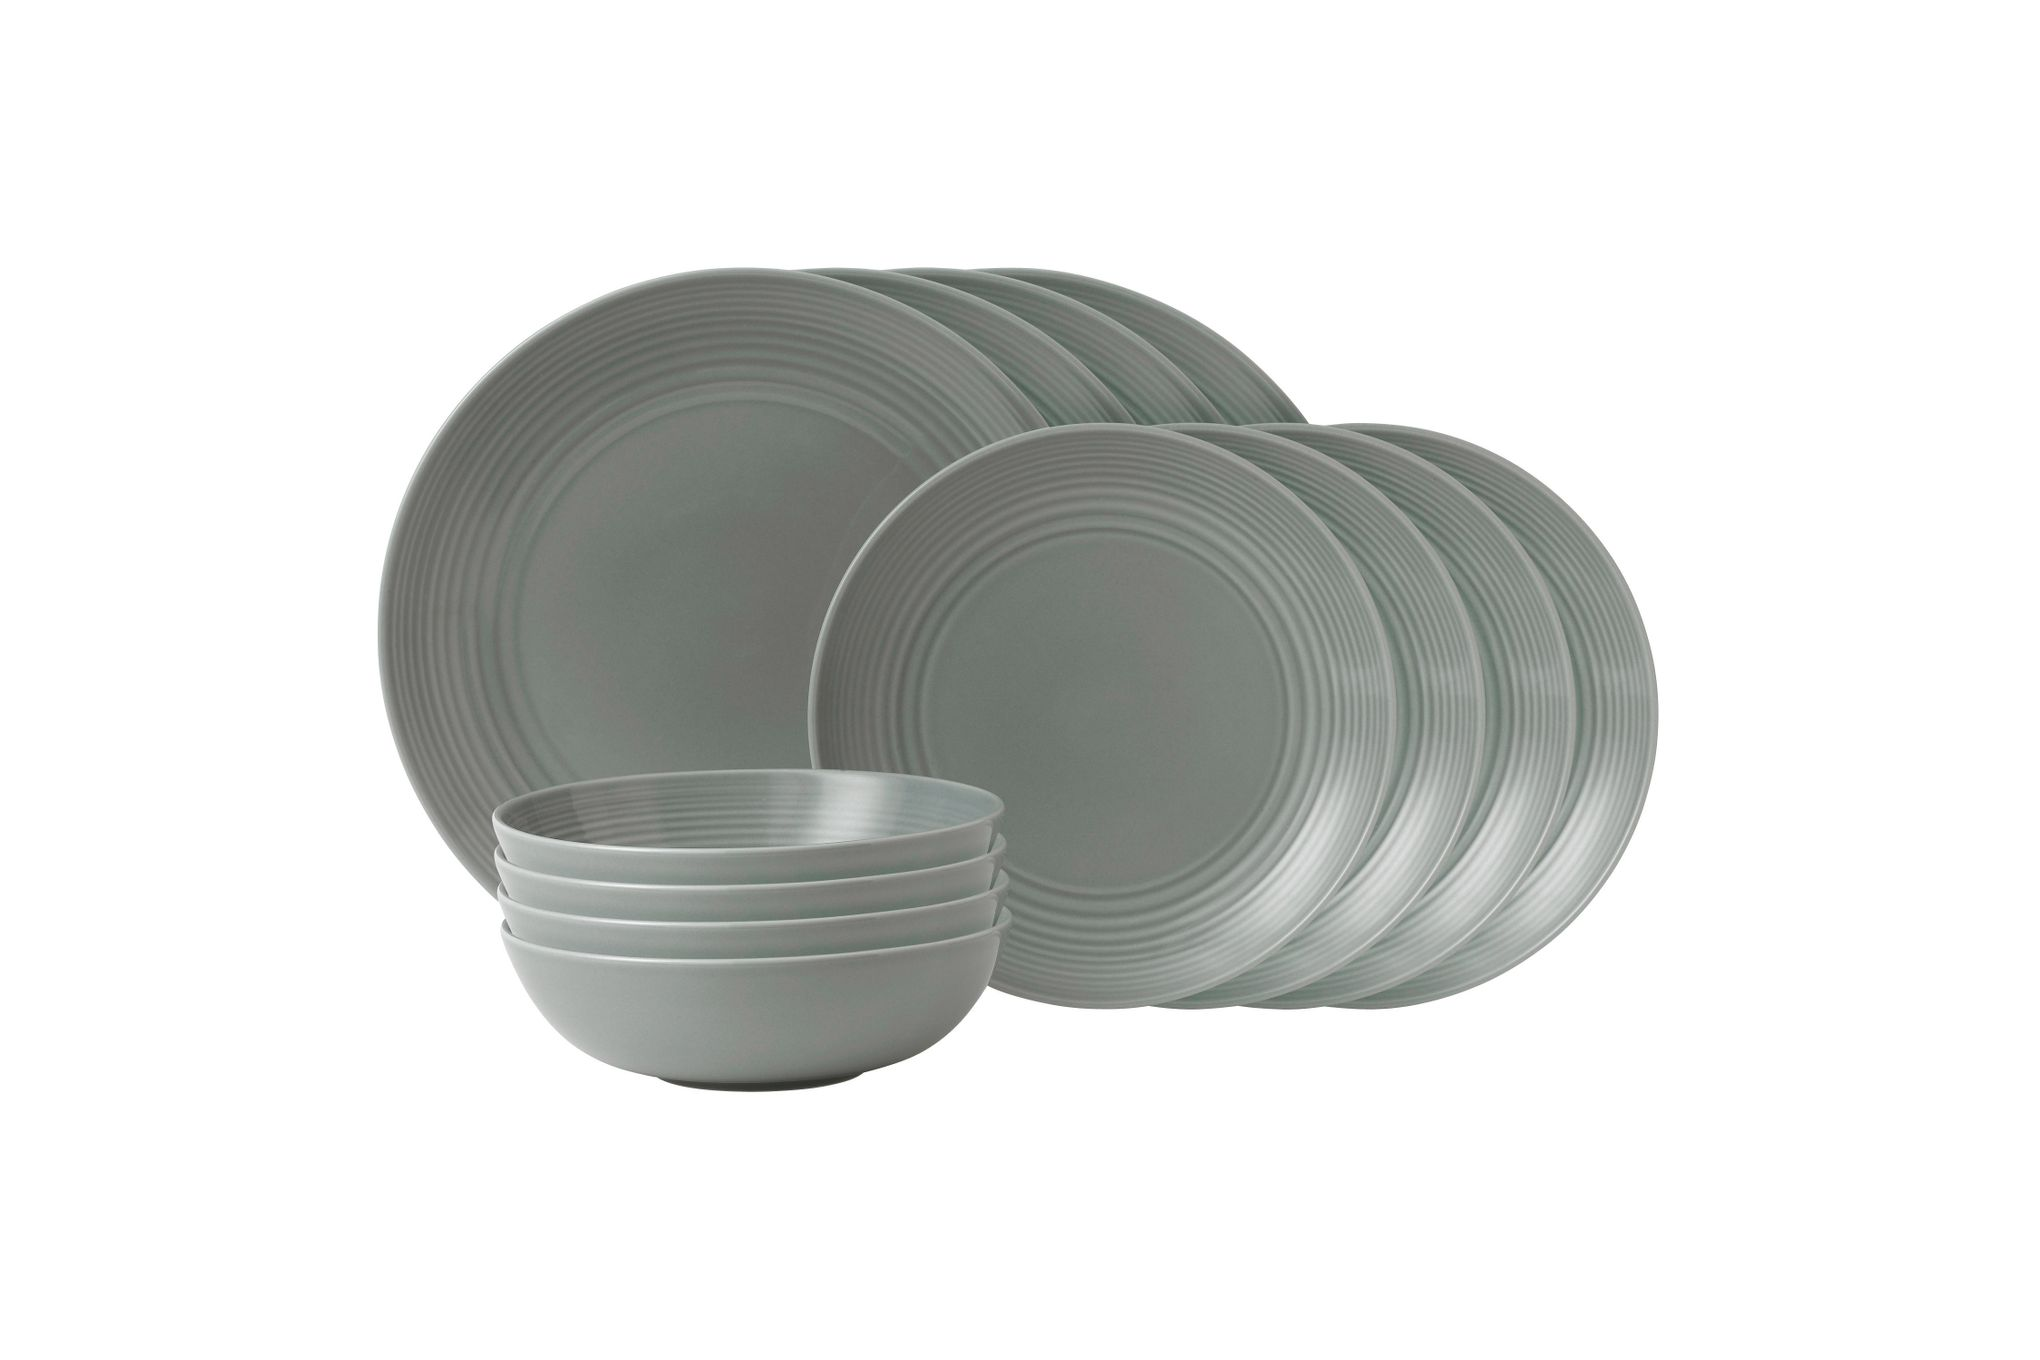 Gordon Ramsay for Royal Doulton Maze Dark Grey 12 Piece Set 4 x Plate 28cm, Plate 22cm, Bowl 18cm thumb 1